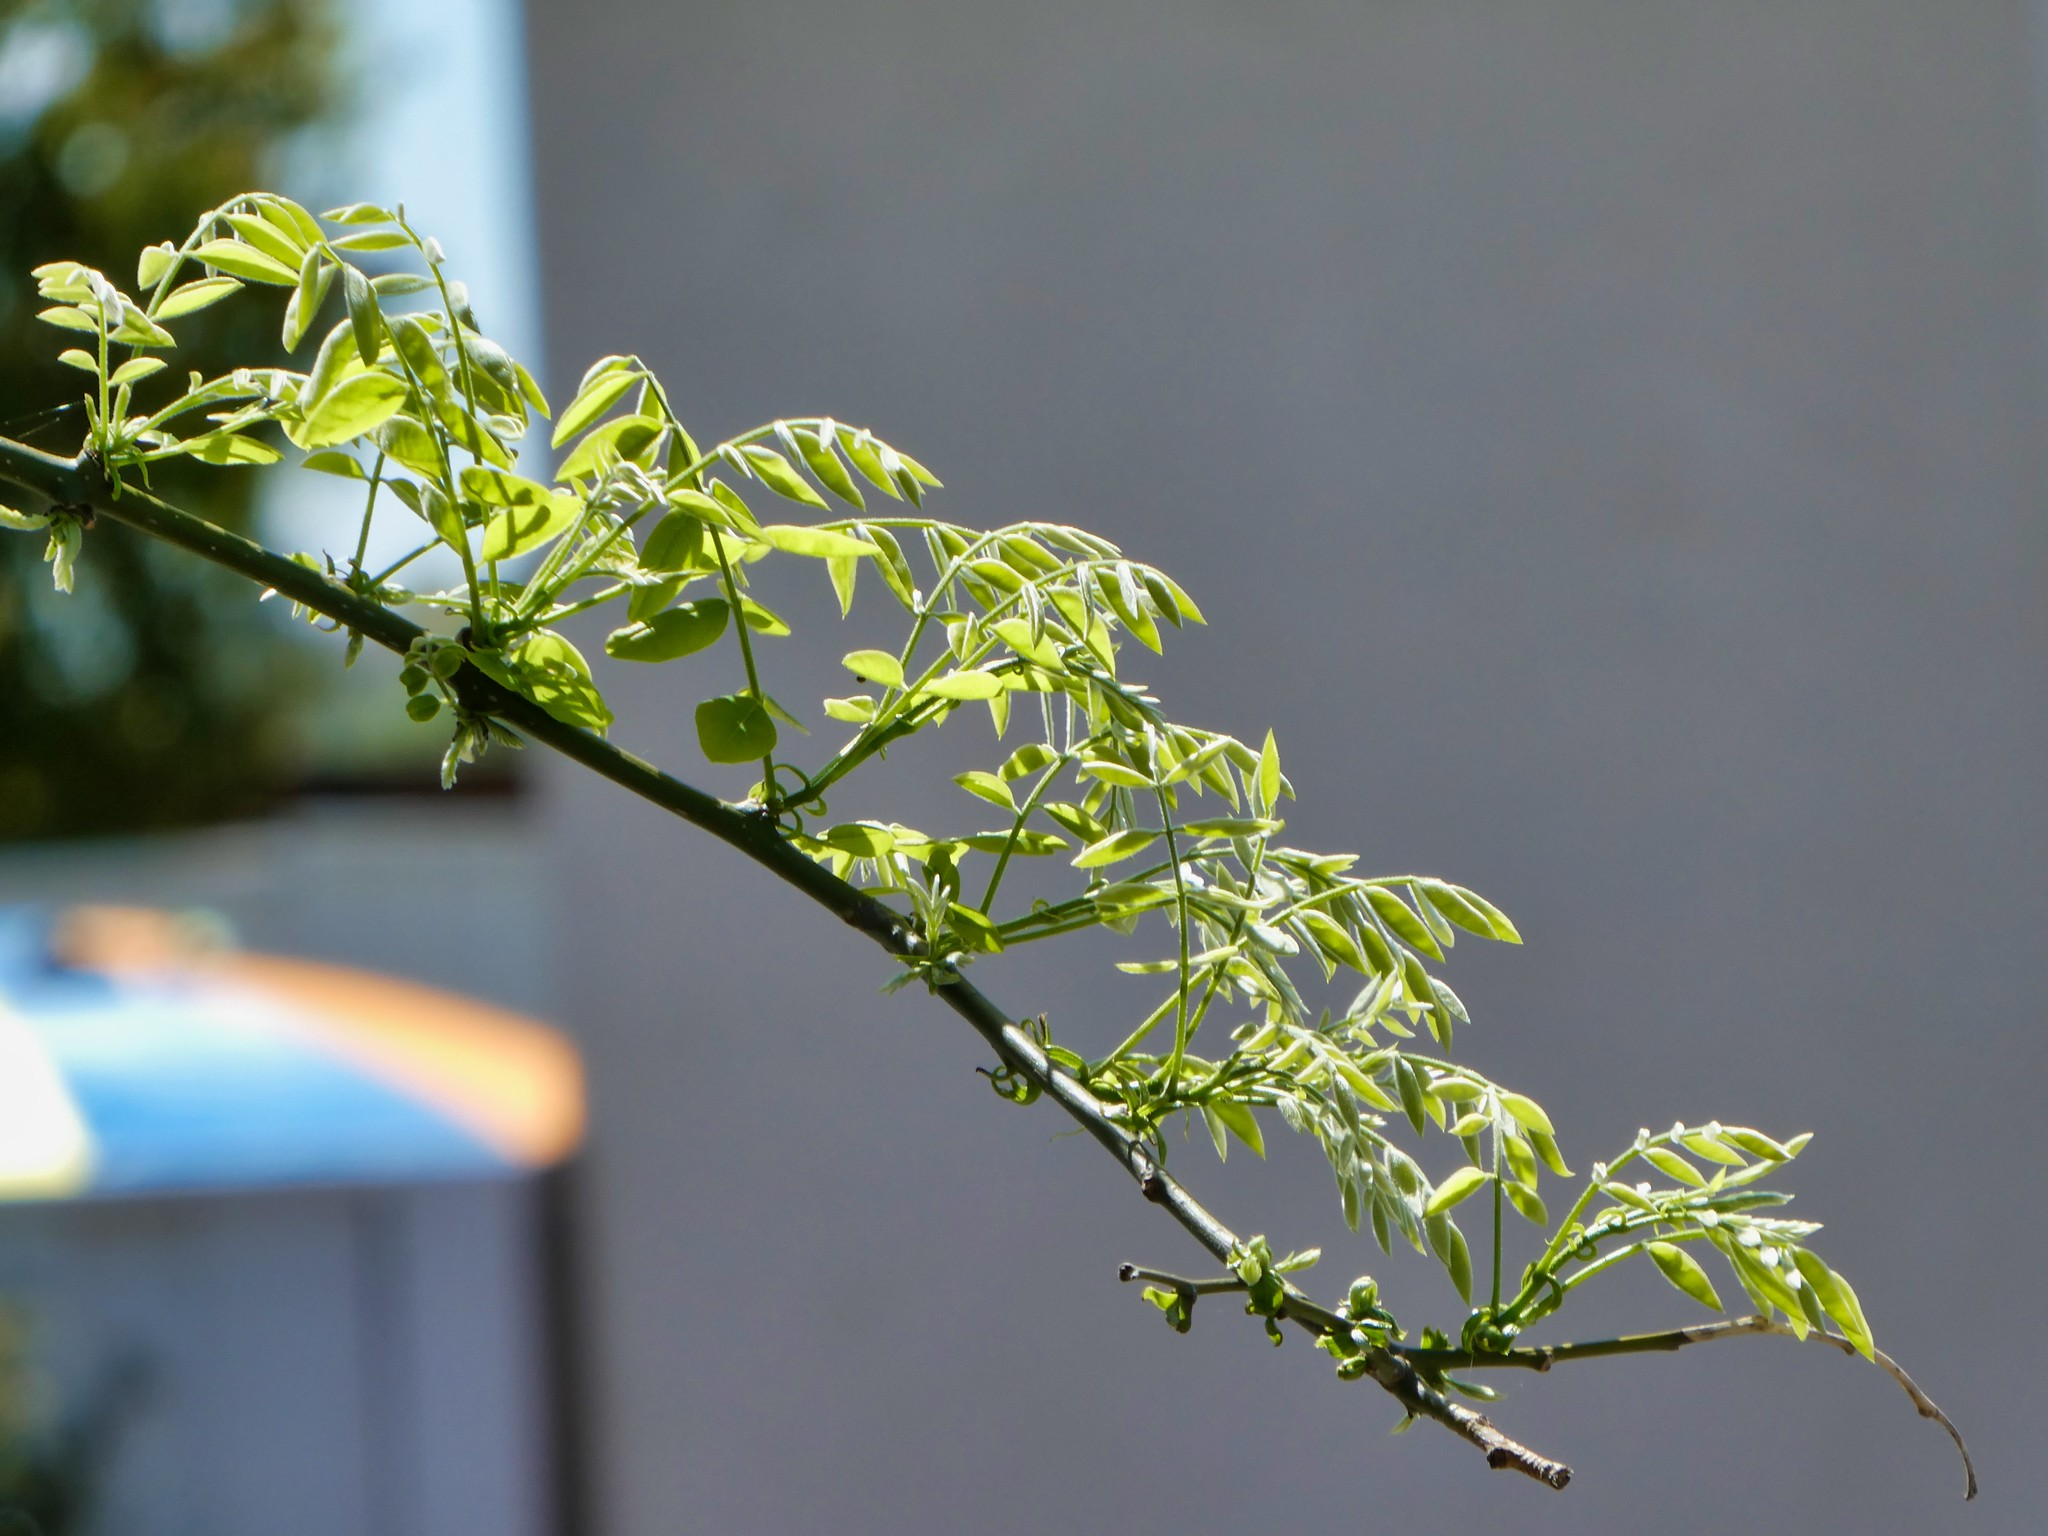 2019-04-14 - Outdoor Photography - Nature - New Leaves